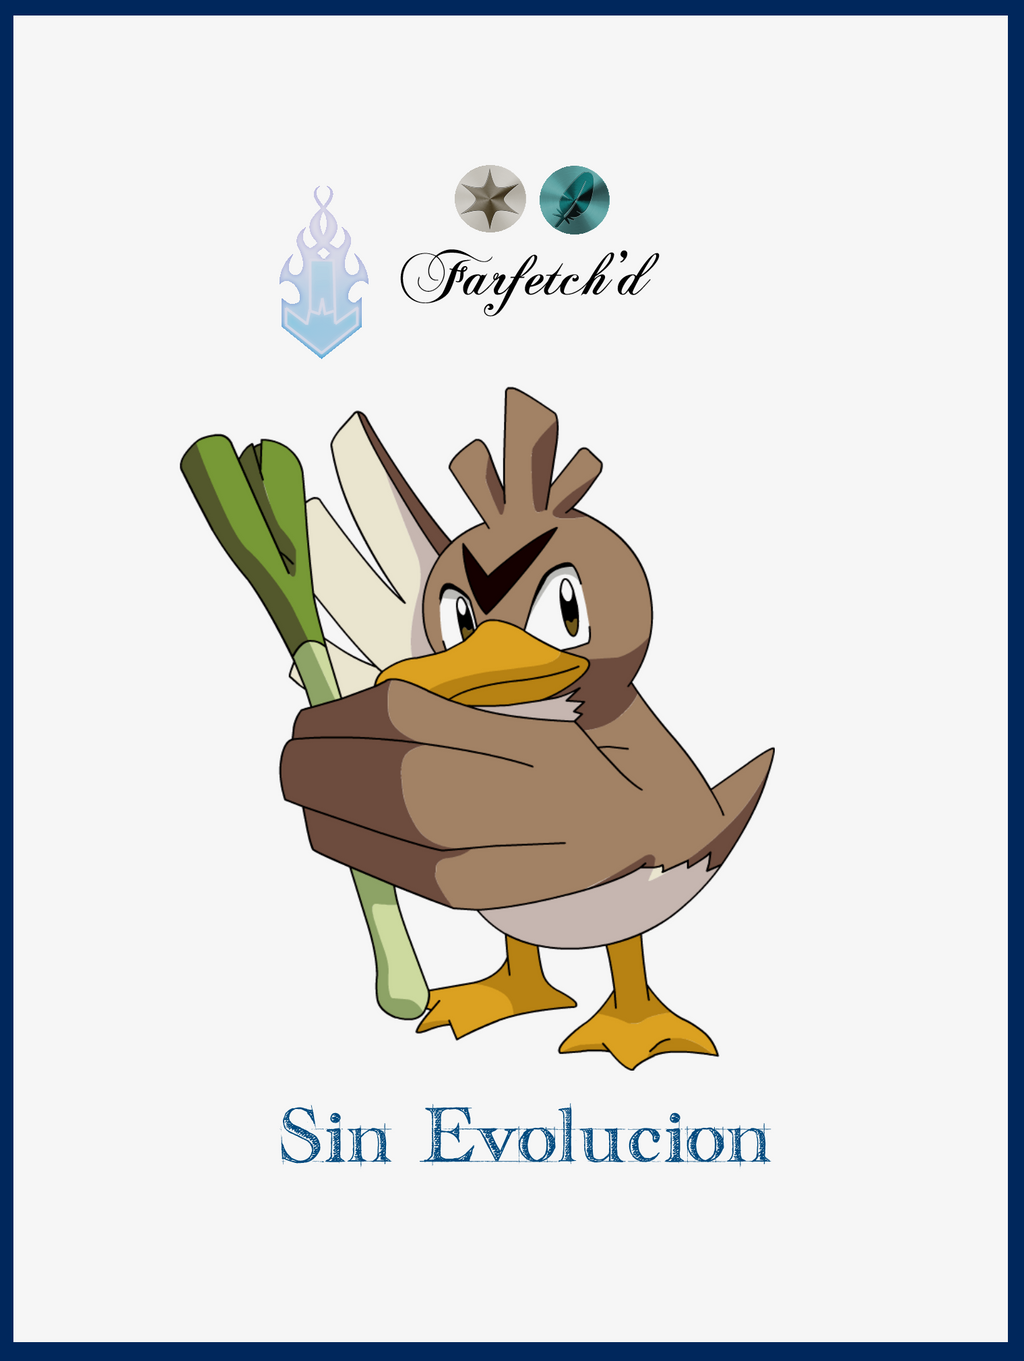 Pokemon Farfetch D Evolution Images